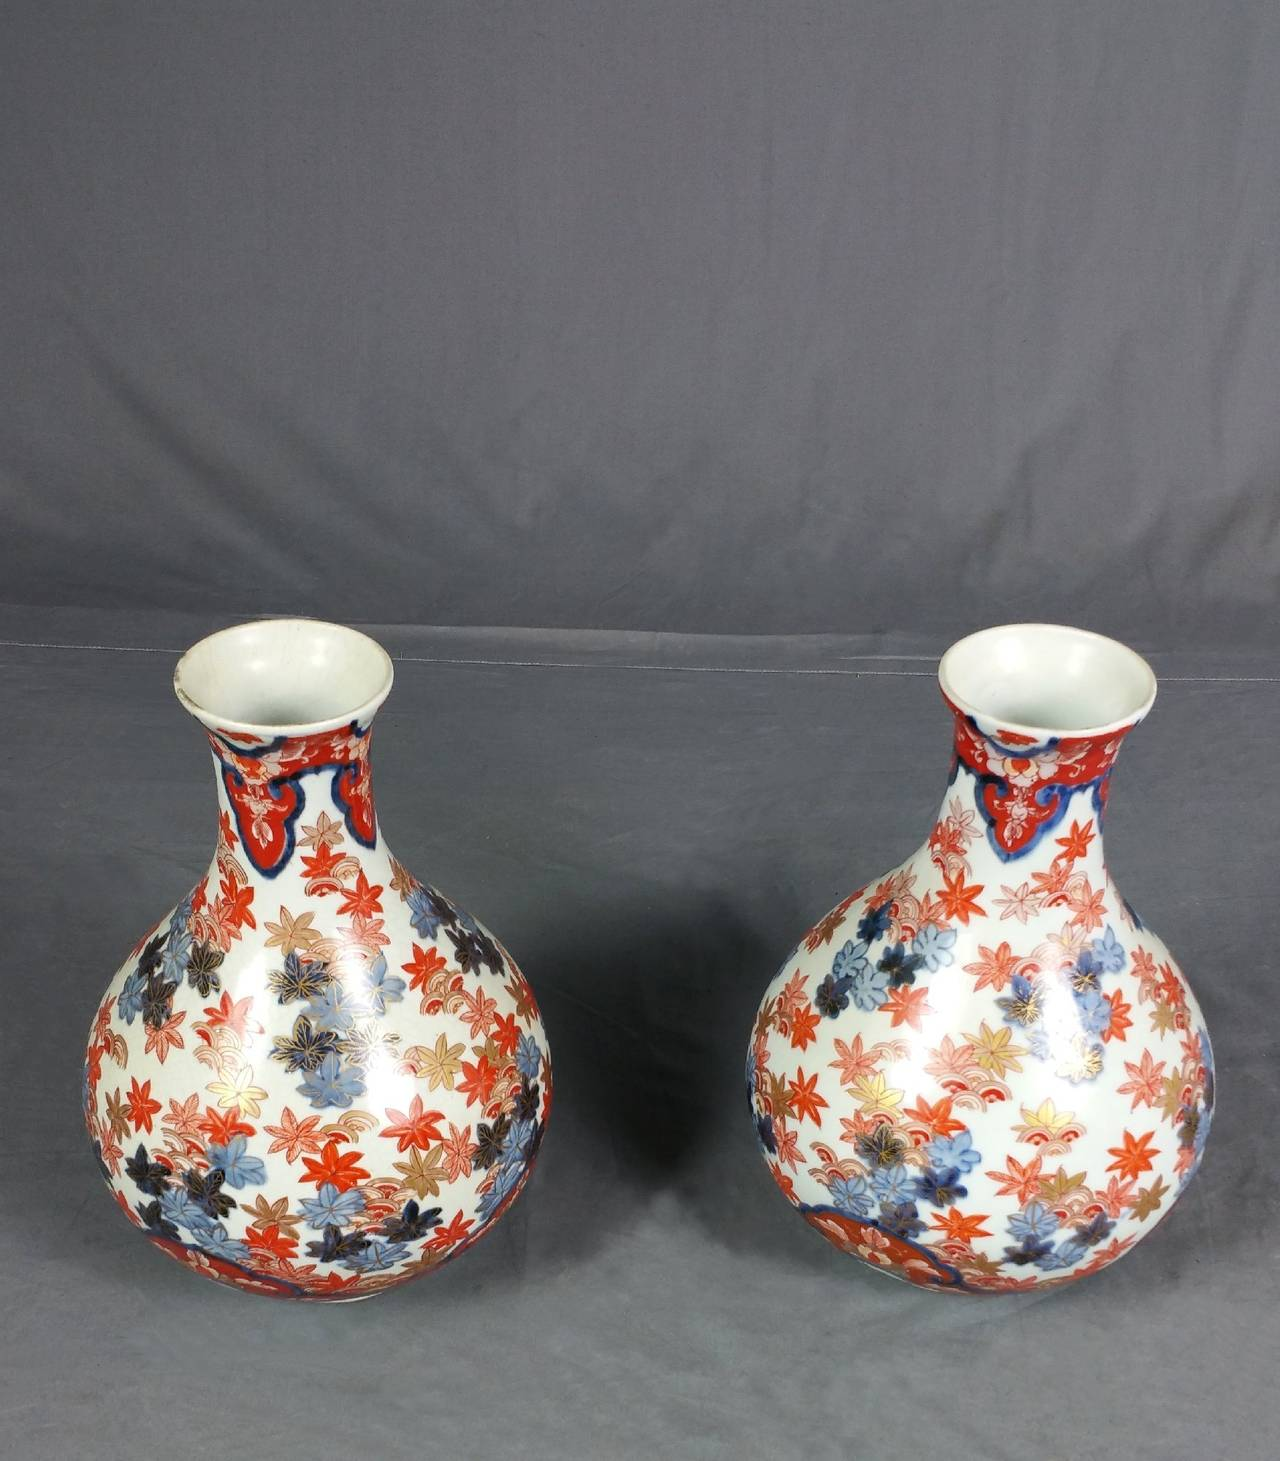 Pair of 19th century japanese imari pottery vases for sale at 1stdibs these very attractive pair of japanese imari pottery vases are late 19th c and are hand reviewsmspy